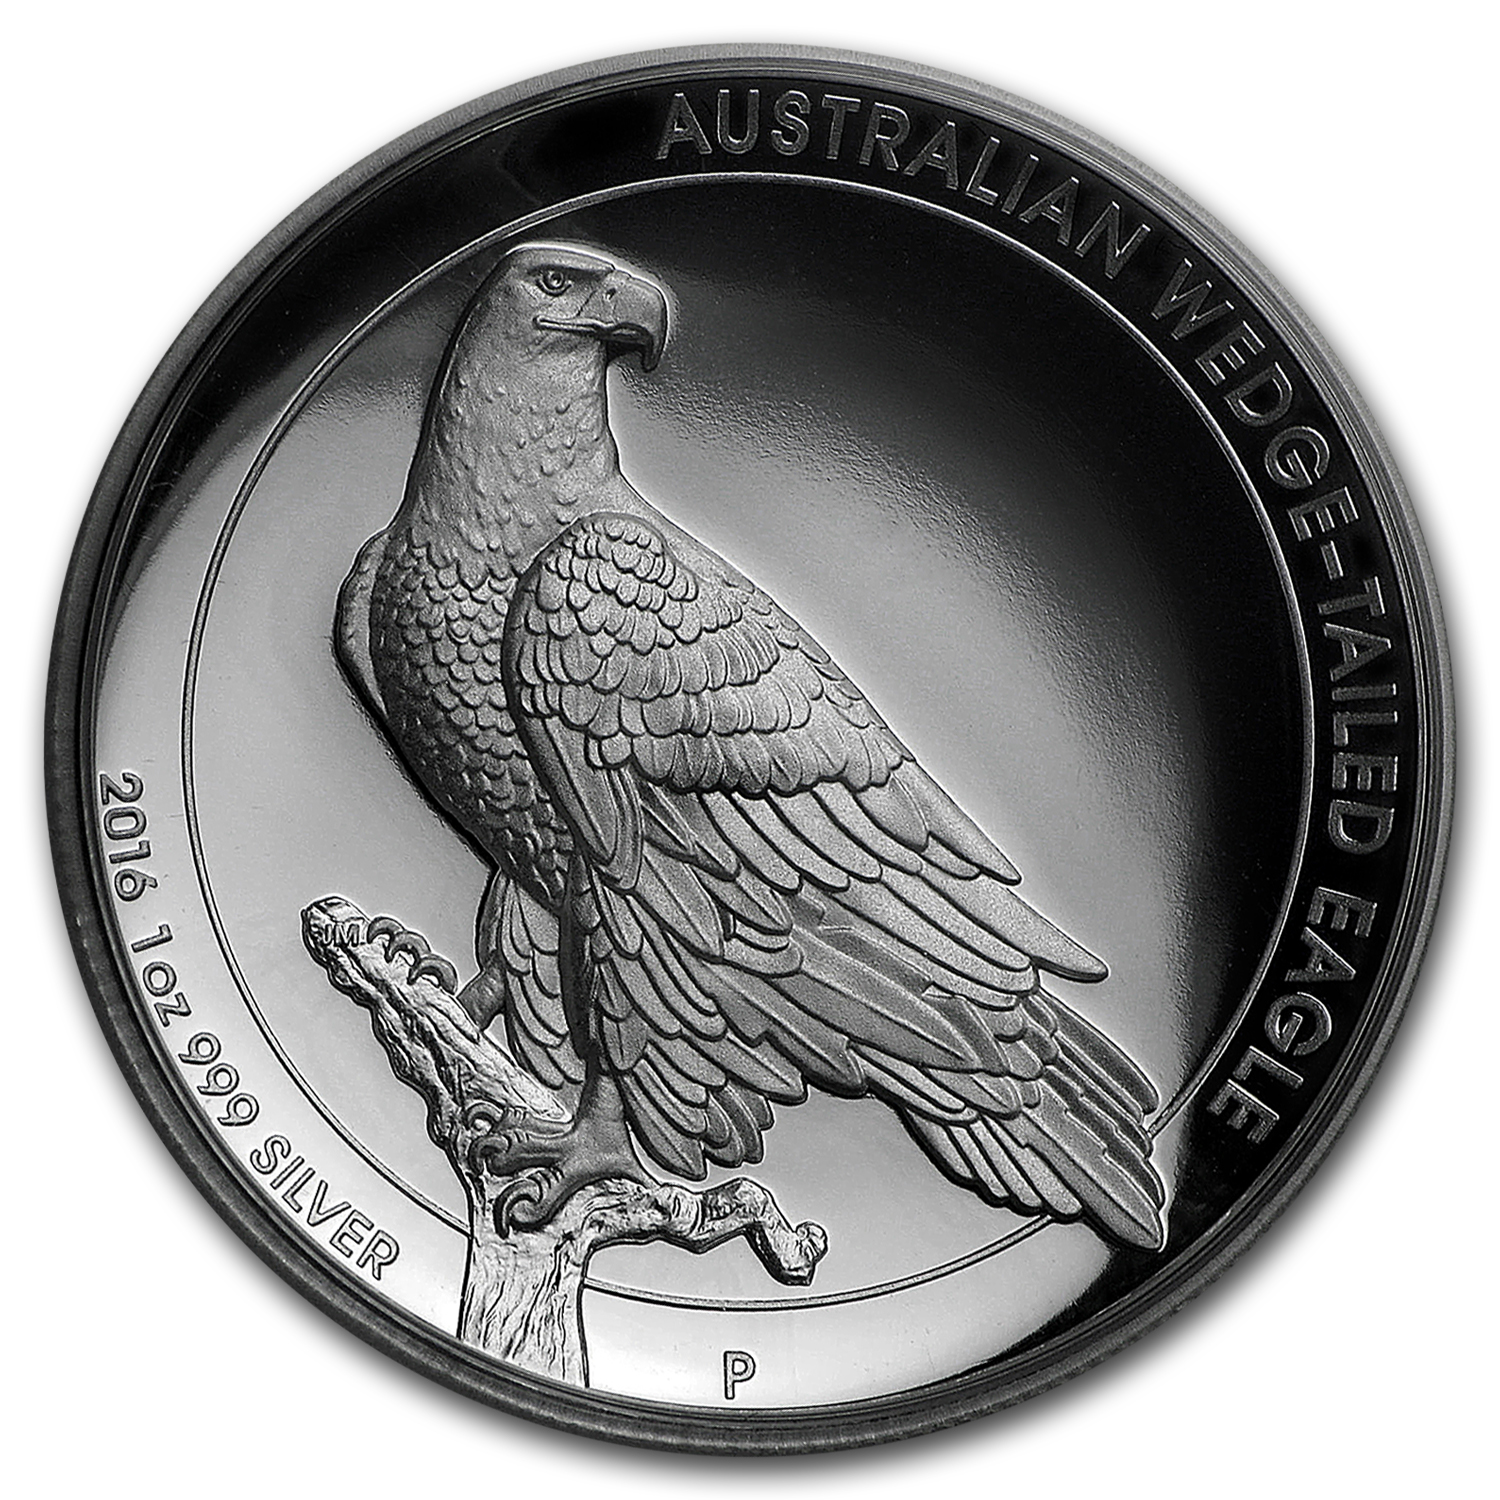 2016 Australia 1 oz Silver Wedge-Tailed Eagle Proof (High Relief)